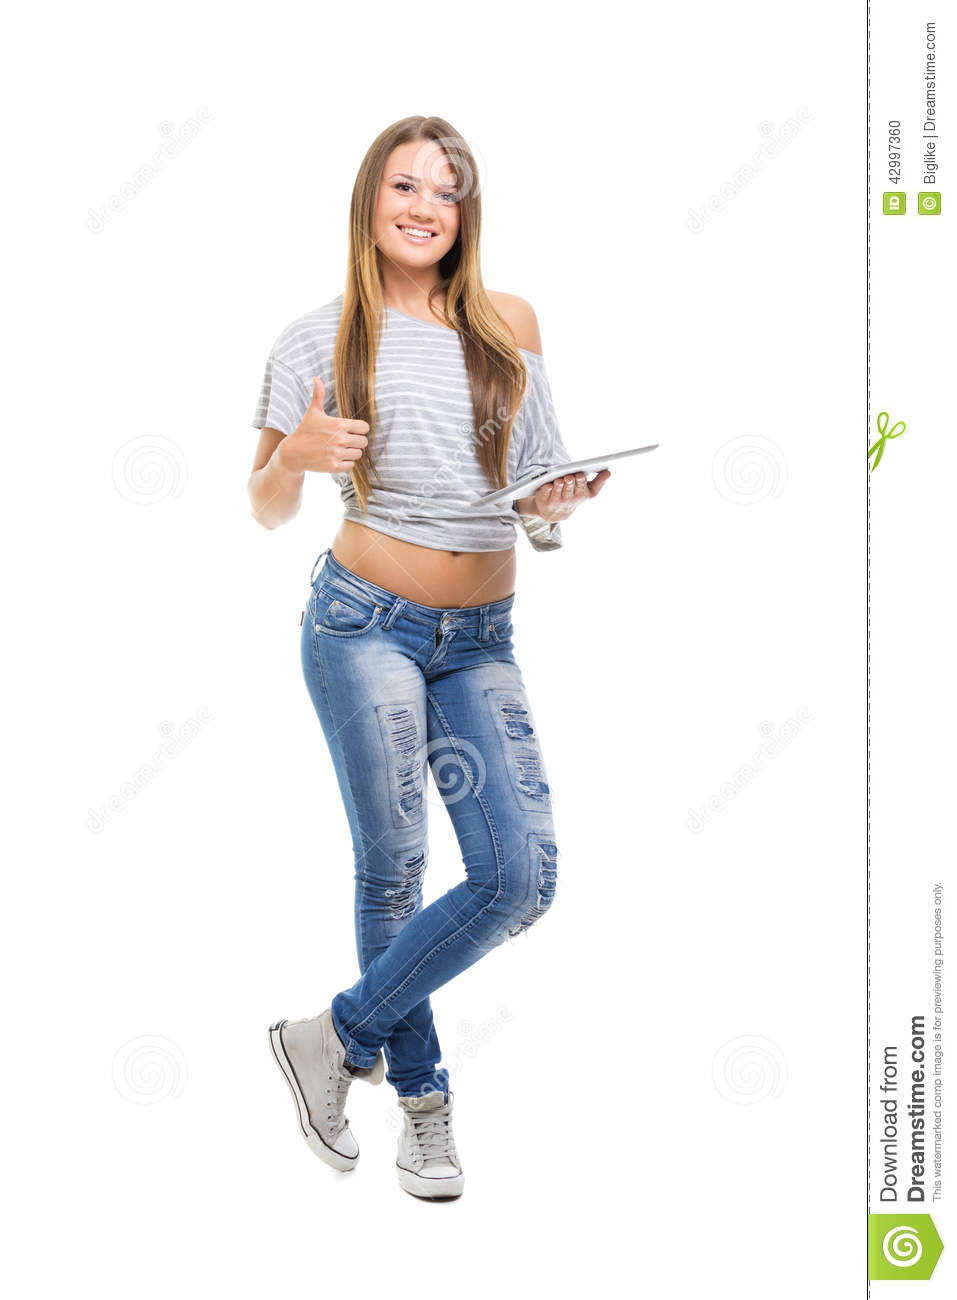 Cute casual teenage girl with digital tablet gesturing Cute teenage girls pics